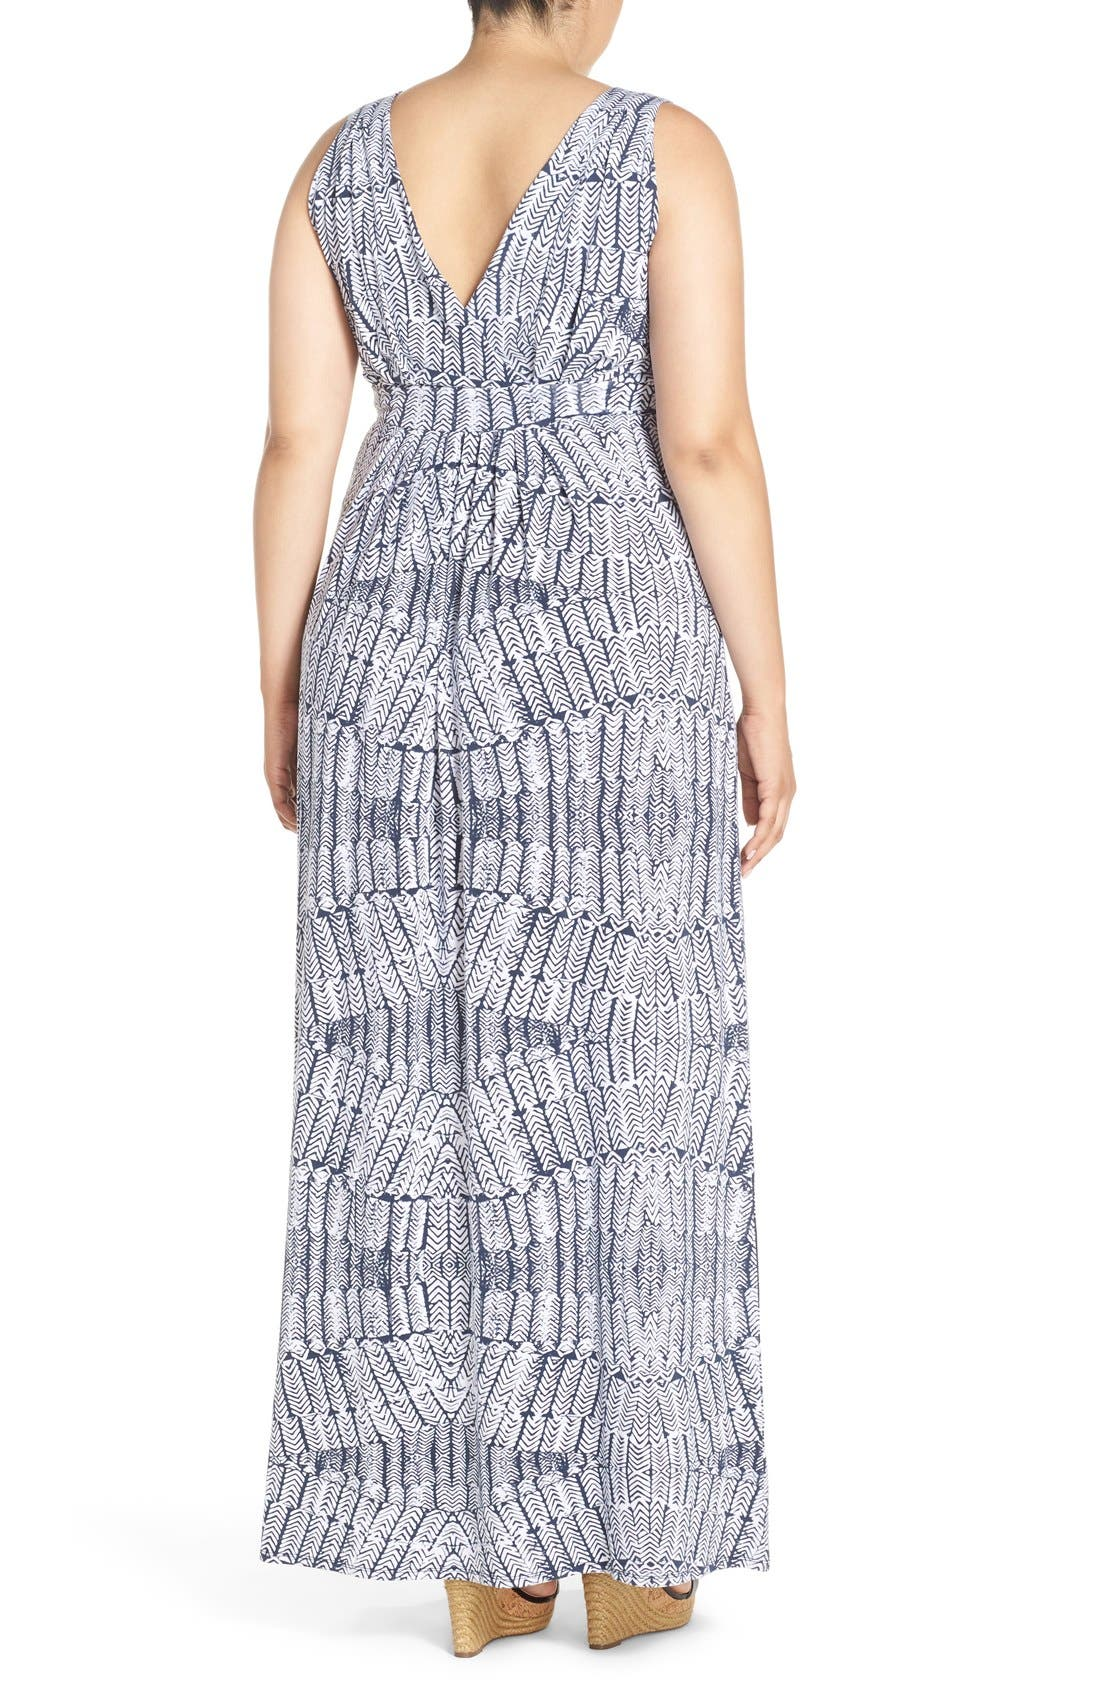 Chloe Empire Waist Maxi Dress,                             Alternate thumbnail 2, color,                             Stamped Feathers